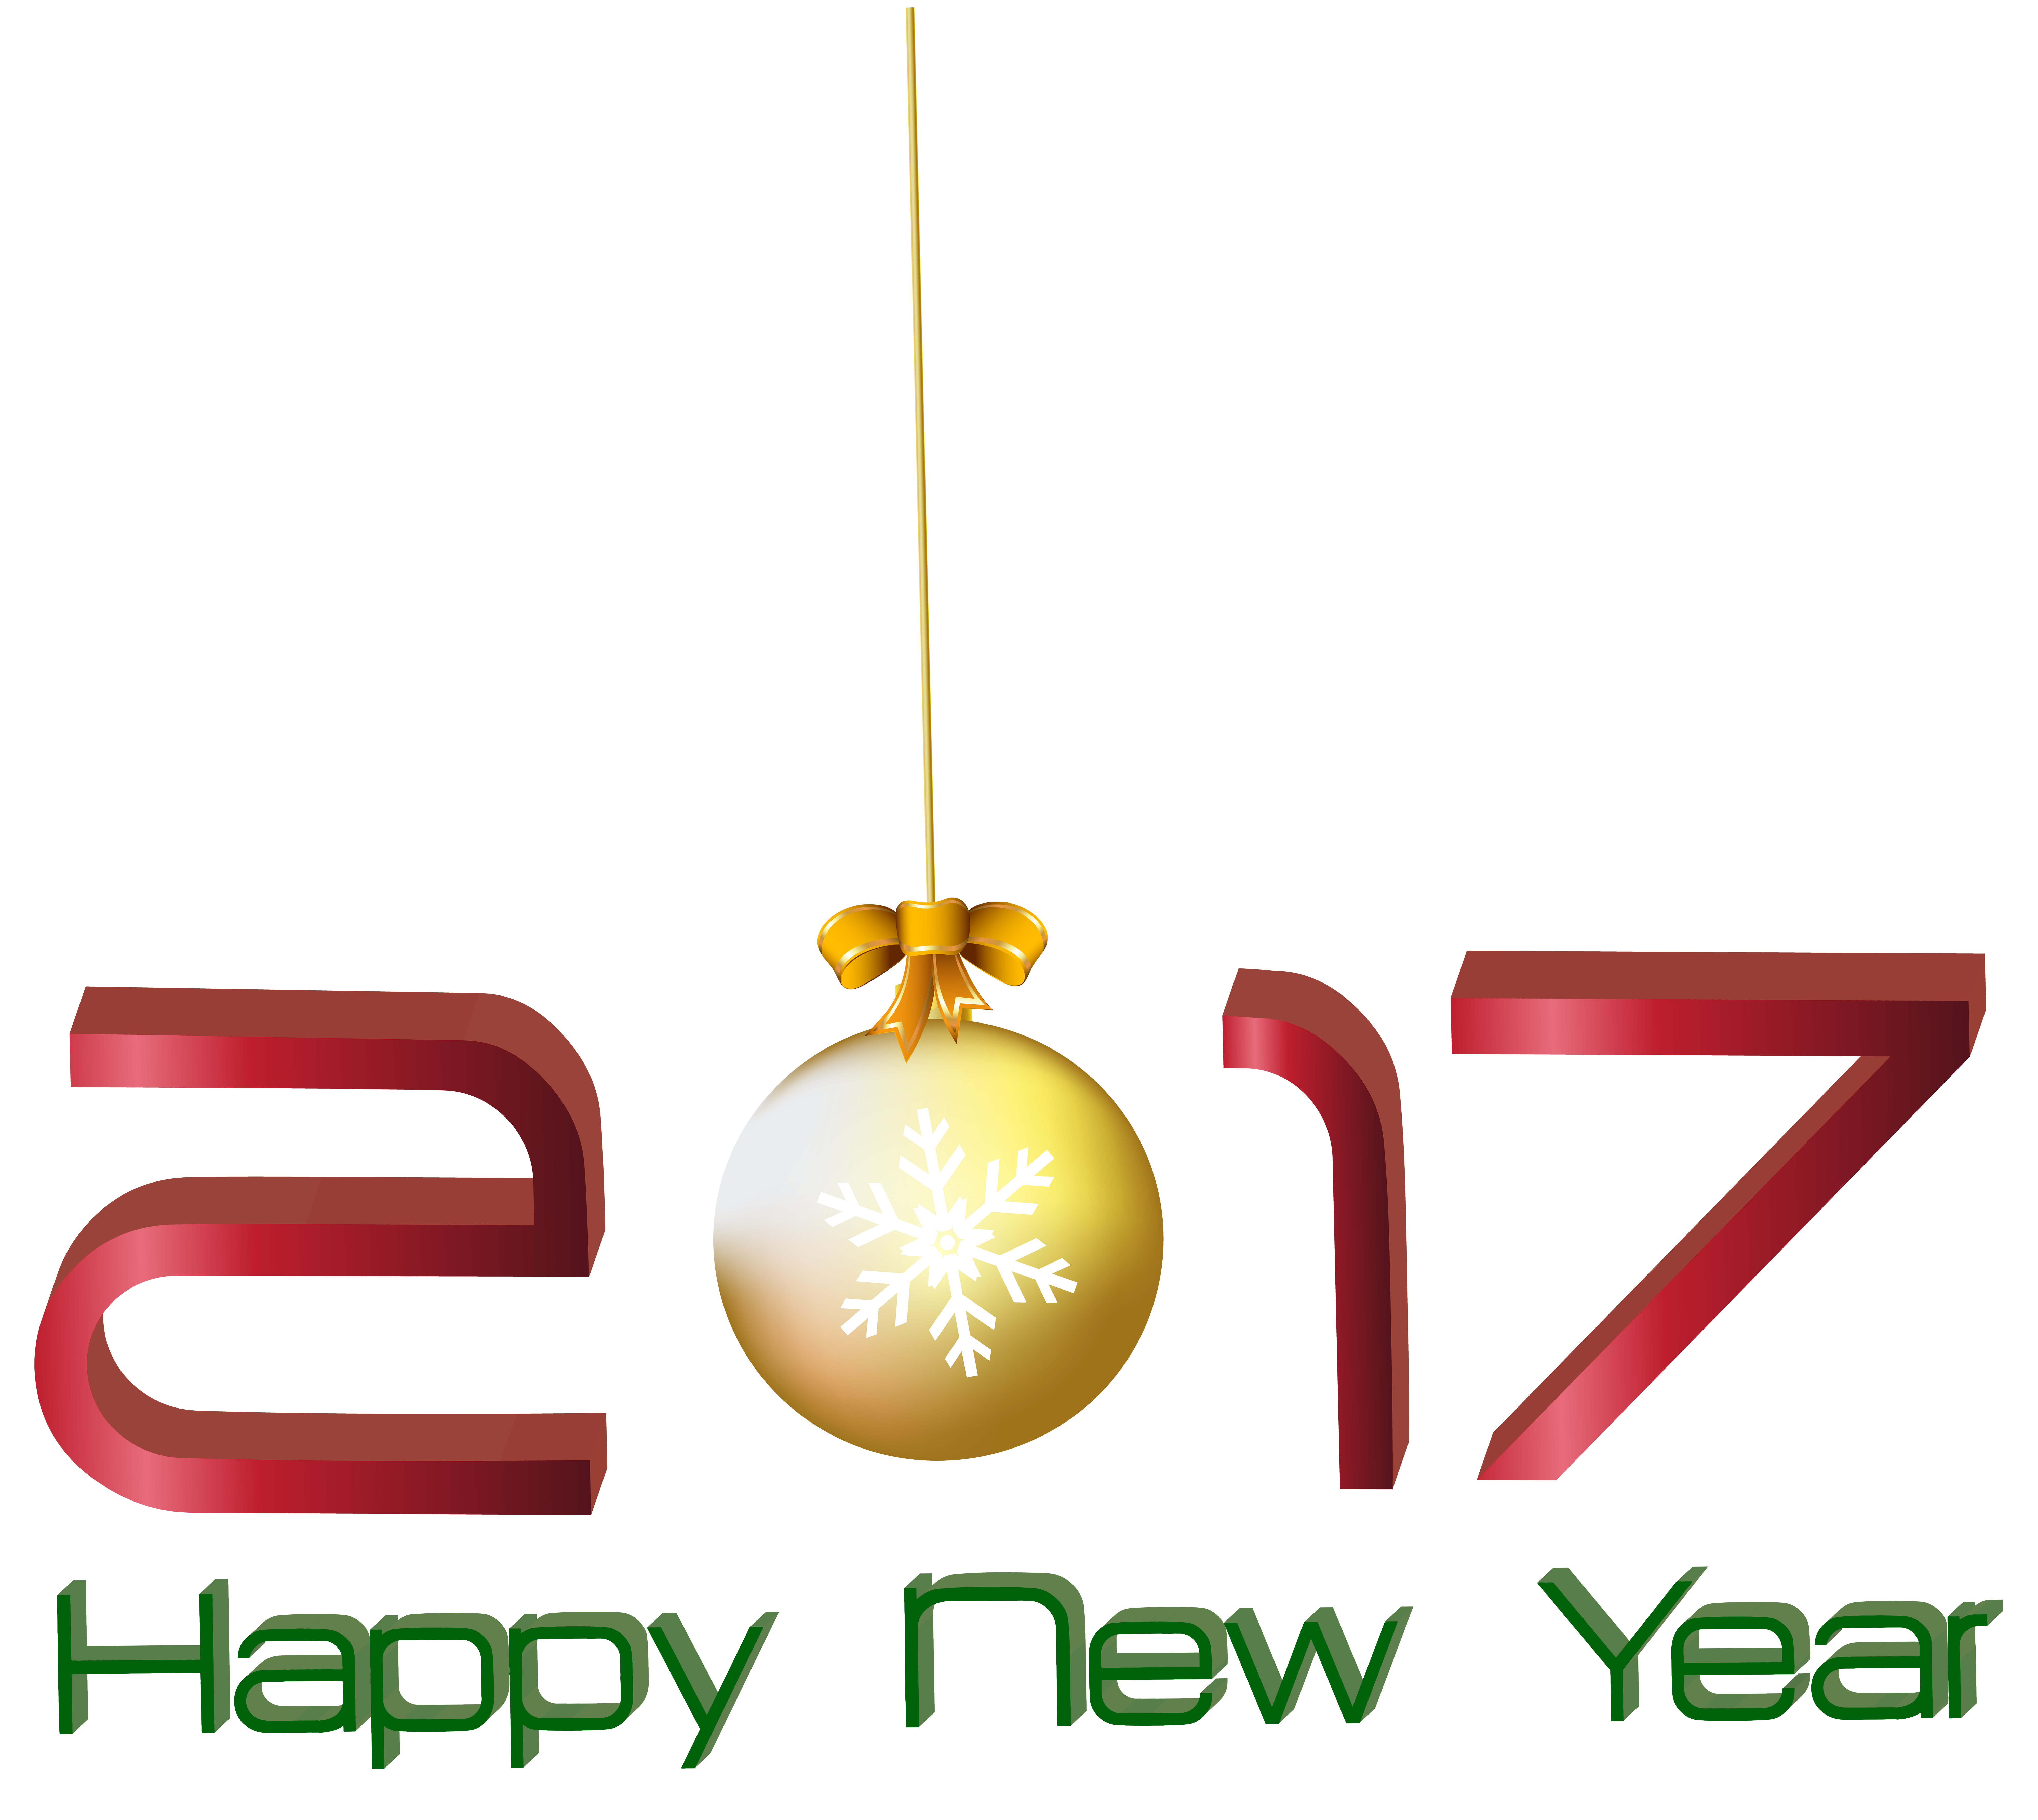 8000x7143 2017 Happy New Year Transparent Png Clip Art Imageu200b Gallery